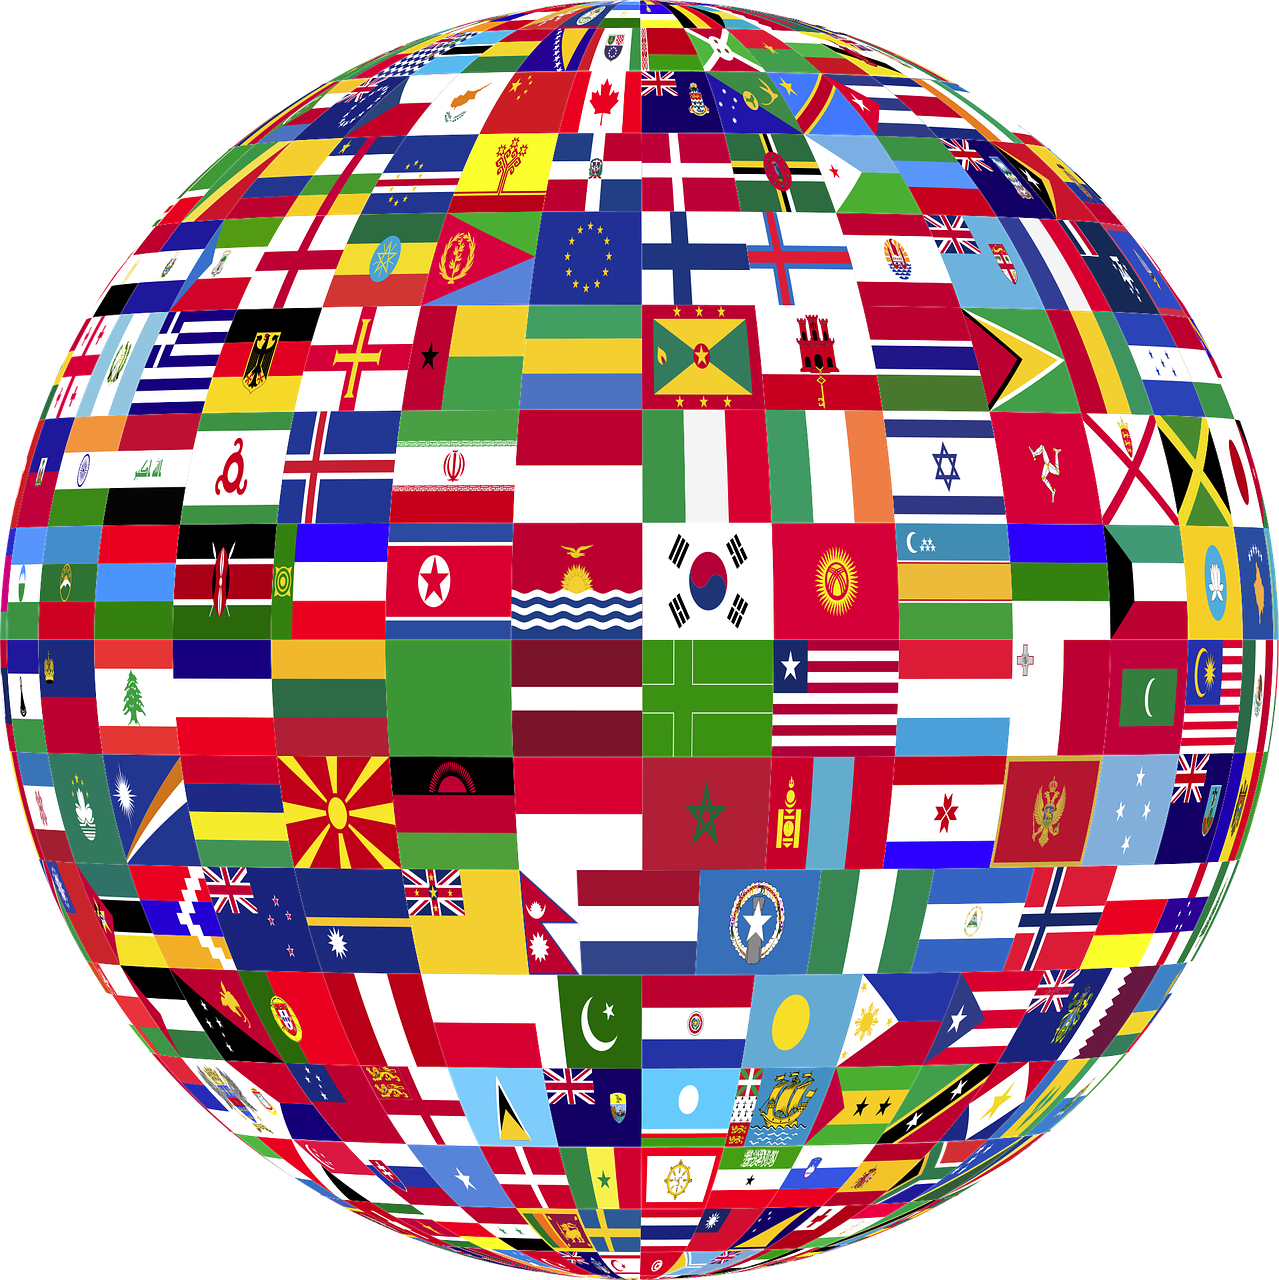 The globe made up of flags of various nations